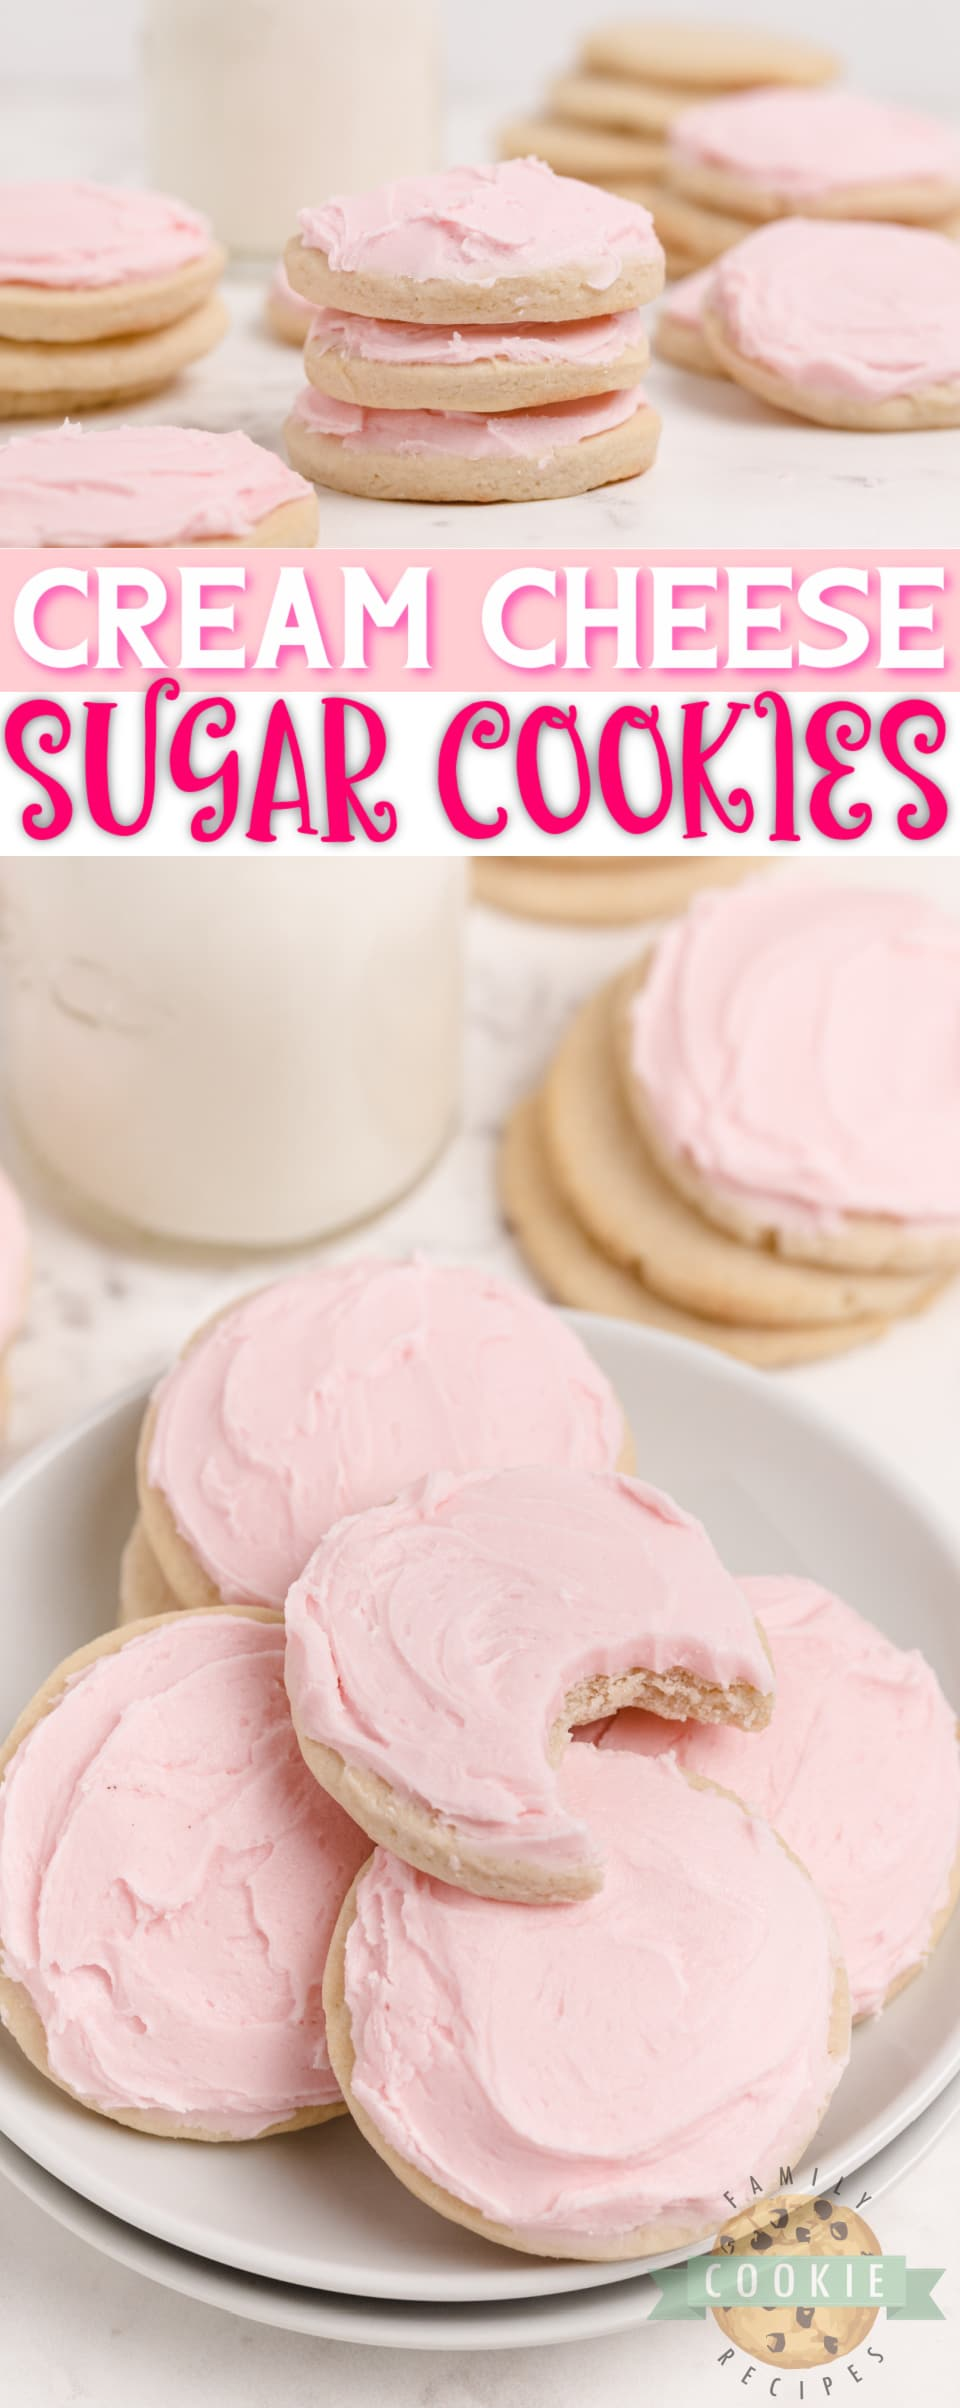 Cream Cheese Sugar Cookies are soft, thick and easily the best sugar cookie recipe I've ever tried. These sugar cookies hold their shape when baked and they are moist and perfectly sweet too!